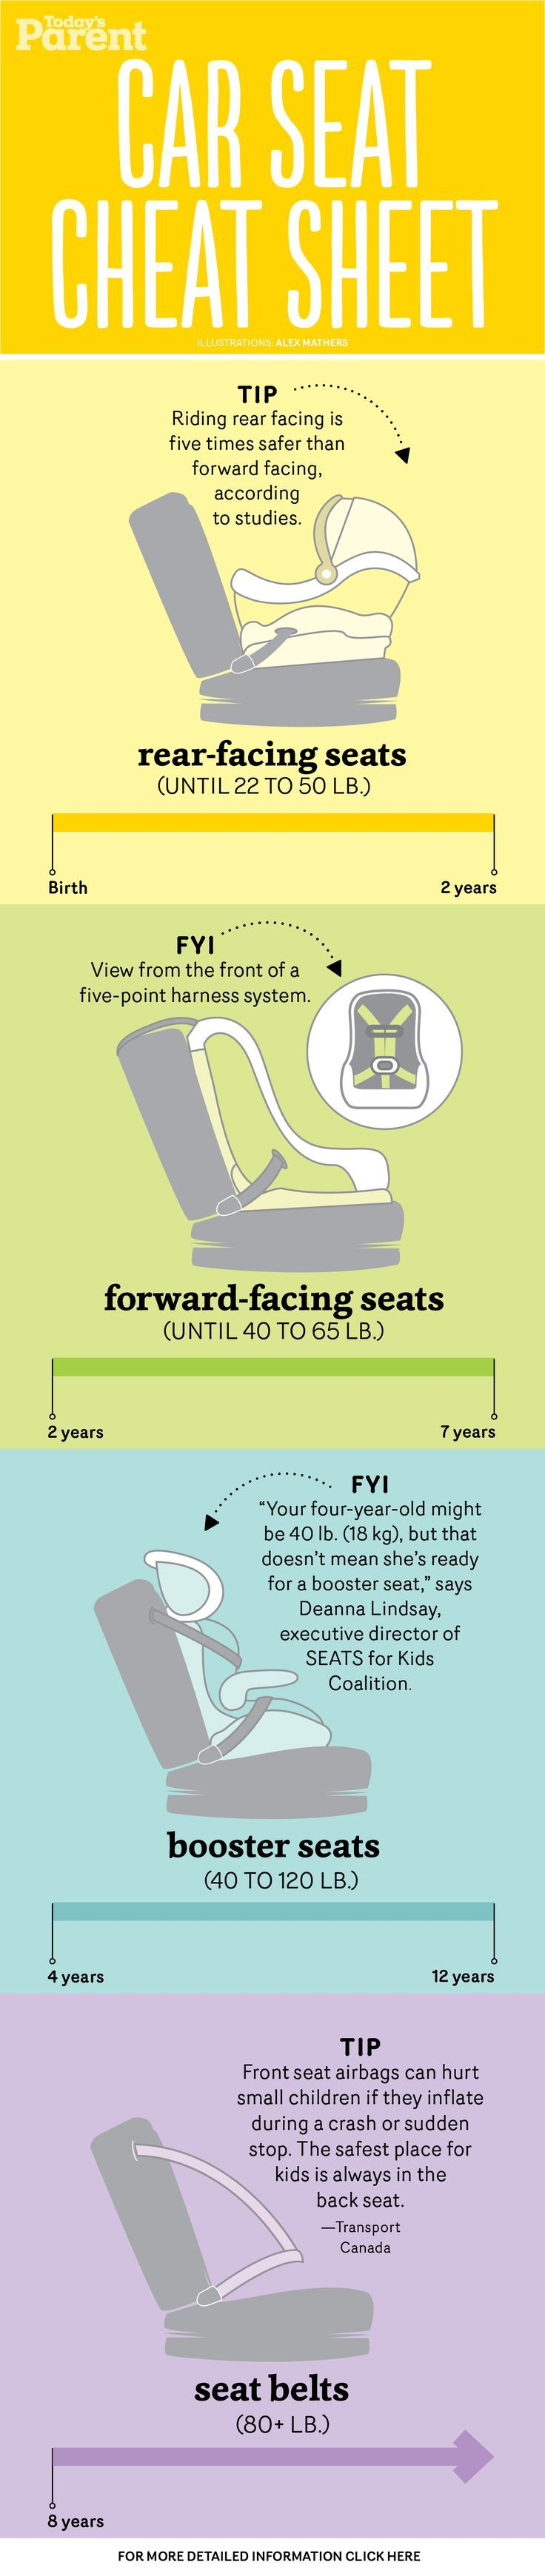 Your by-age guide to car seat safety - YouTube